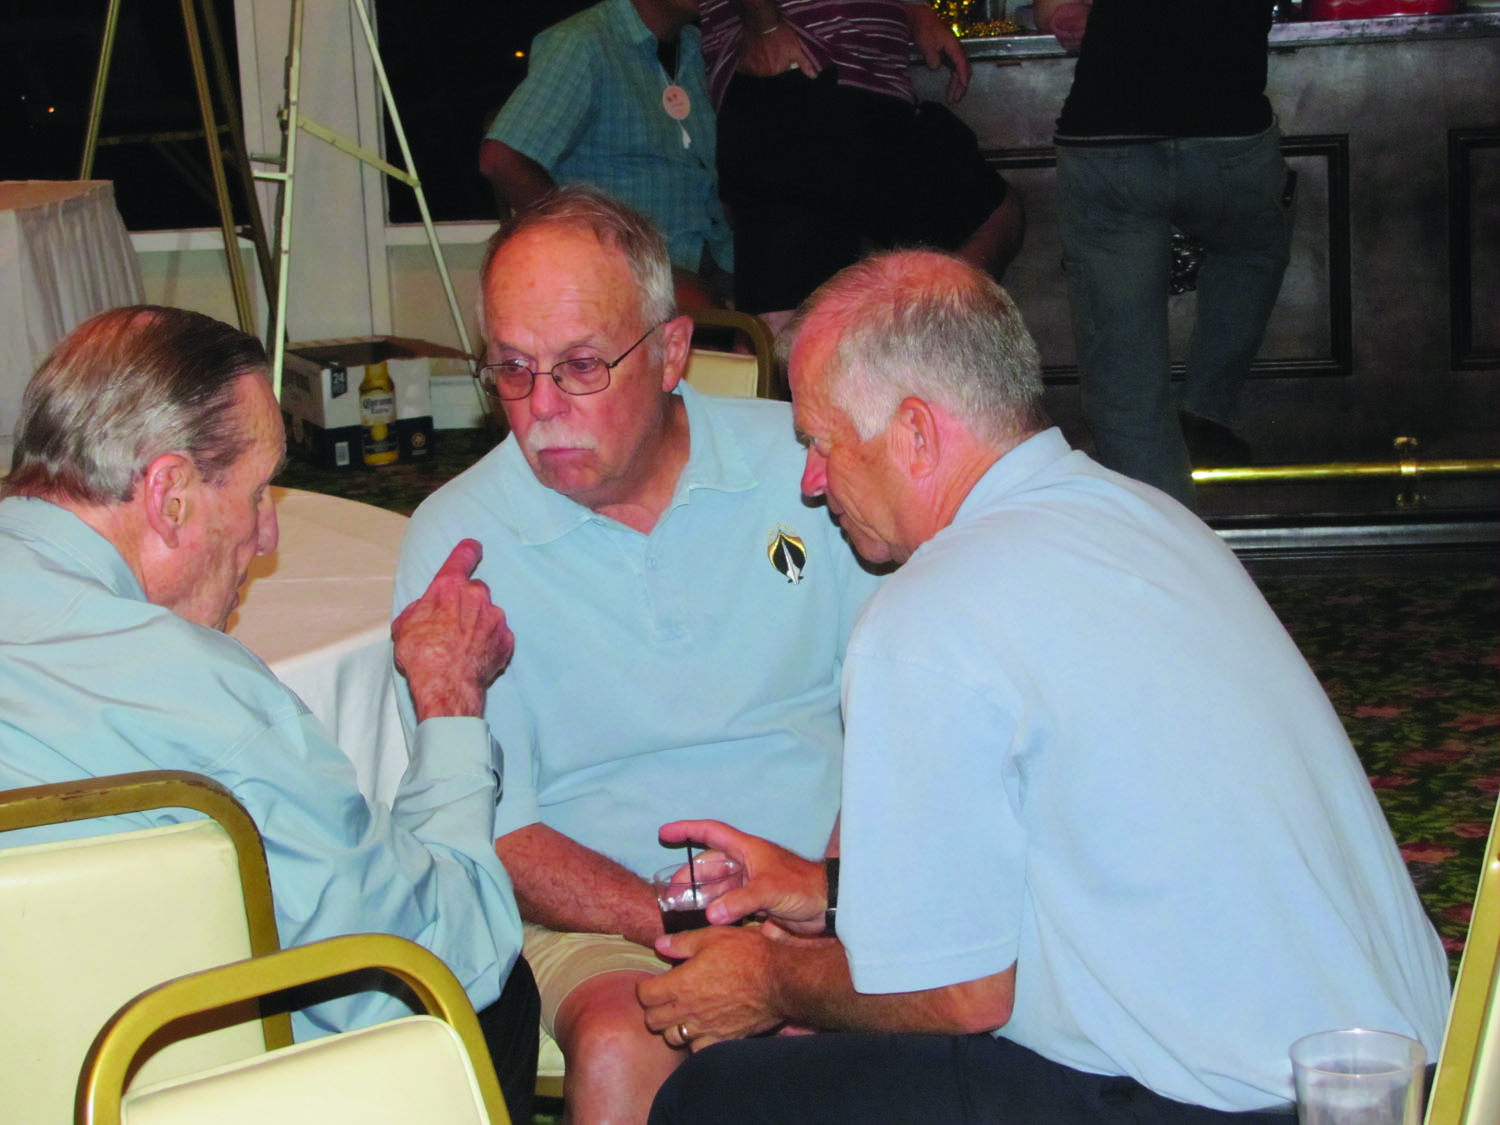 Throughout the reunion, Aces could share experiences with those who truly understood.